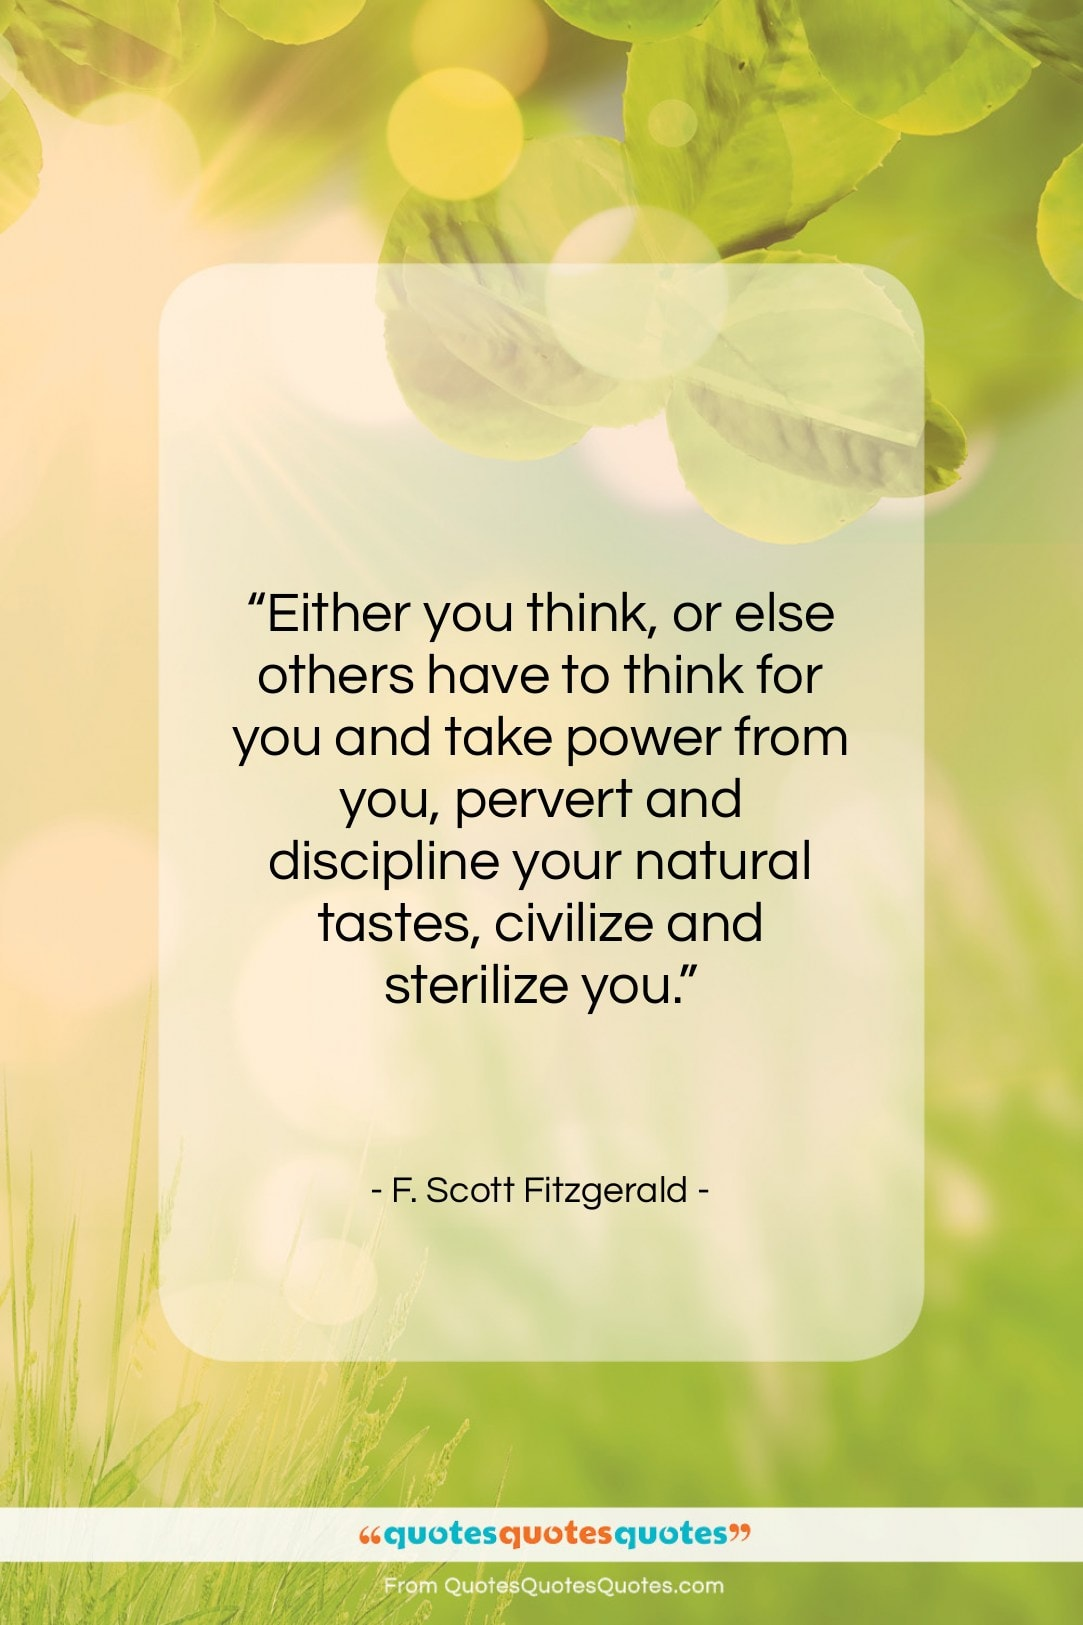 """F. Scott Fitzgerald quote: """"Either you think, or else others have…""""- at QuotesQuotesQuotes.com"""